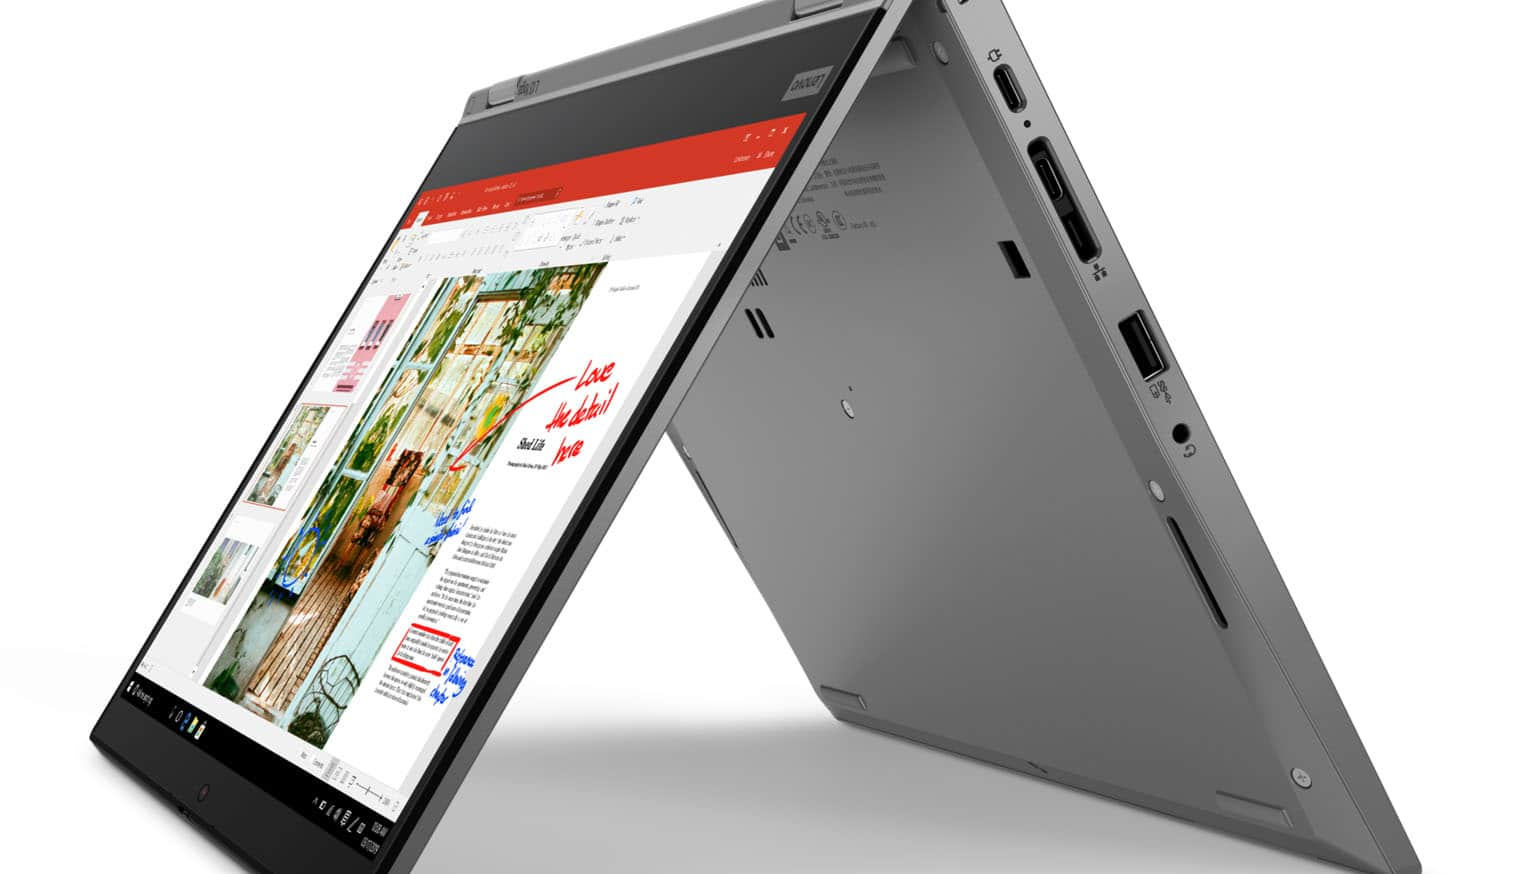 thinkpad L13 yoga featured